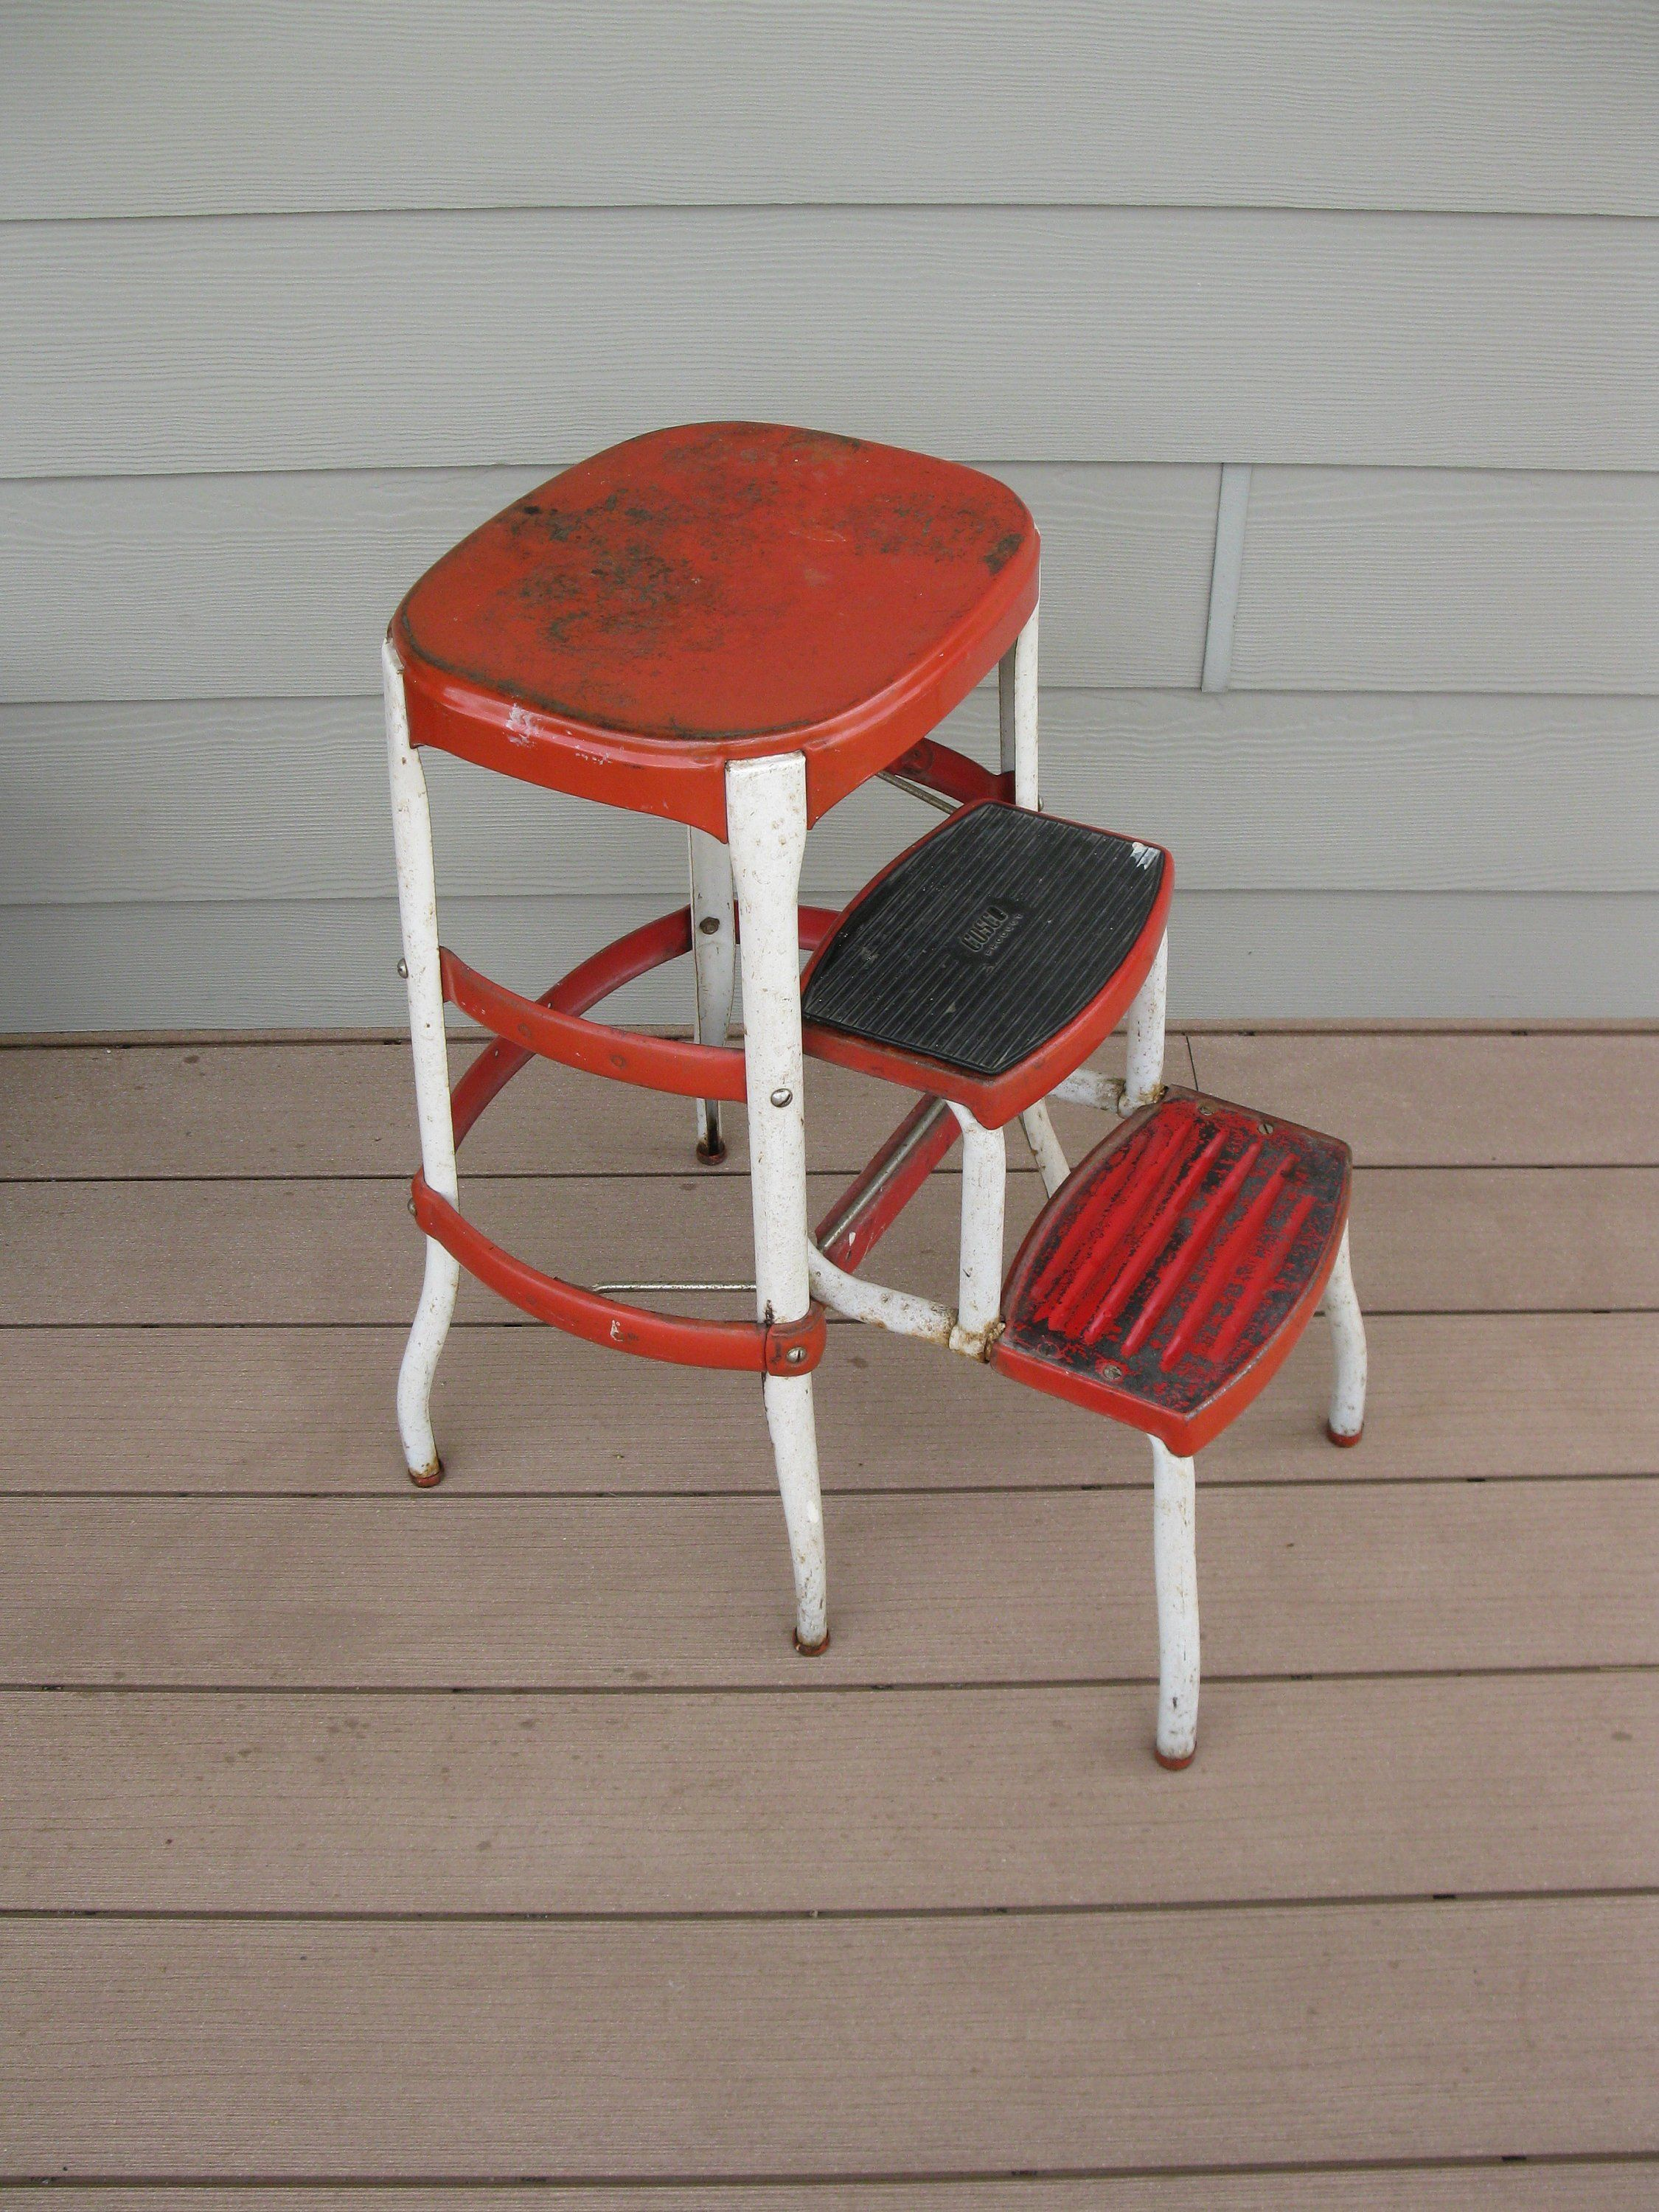 Pleasant Shabby Metal Cosco Stool Chair Red Childs Stool Step Squirreltailoven Fun Painted Chair Ideas Images Squirreltailovenorg